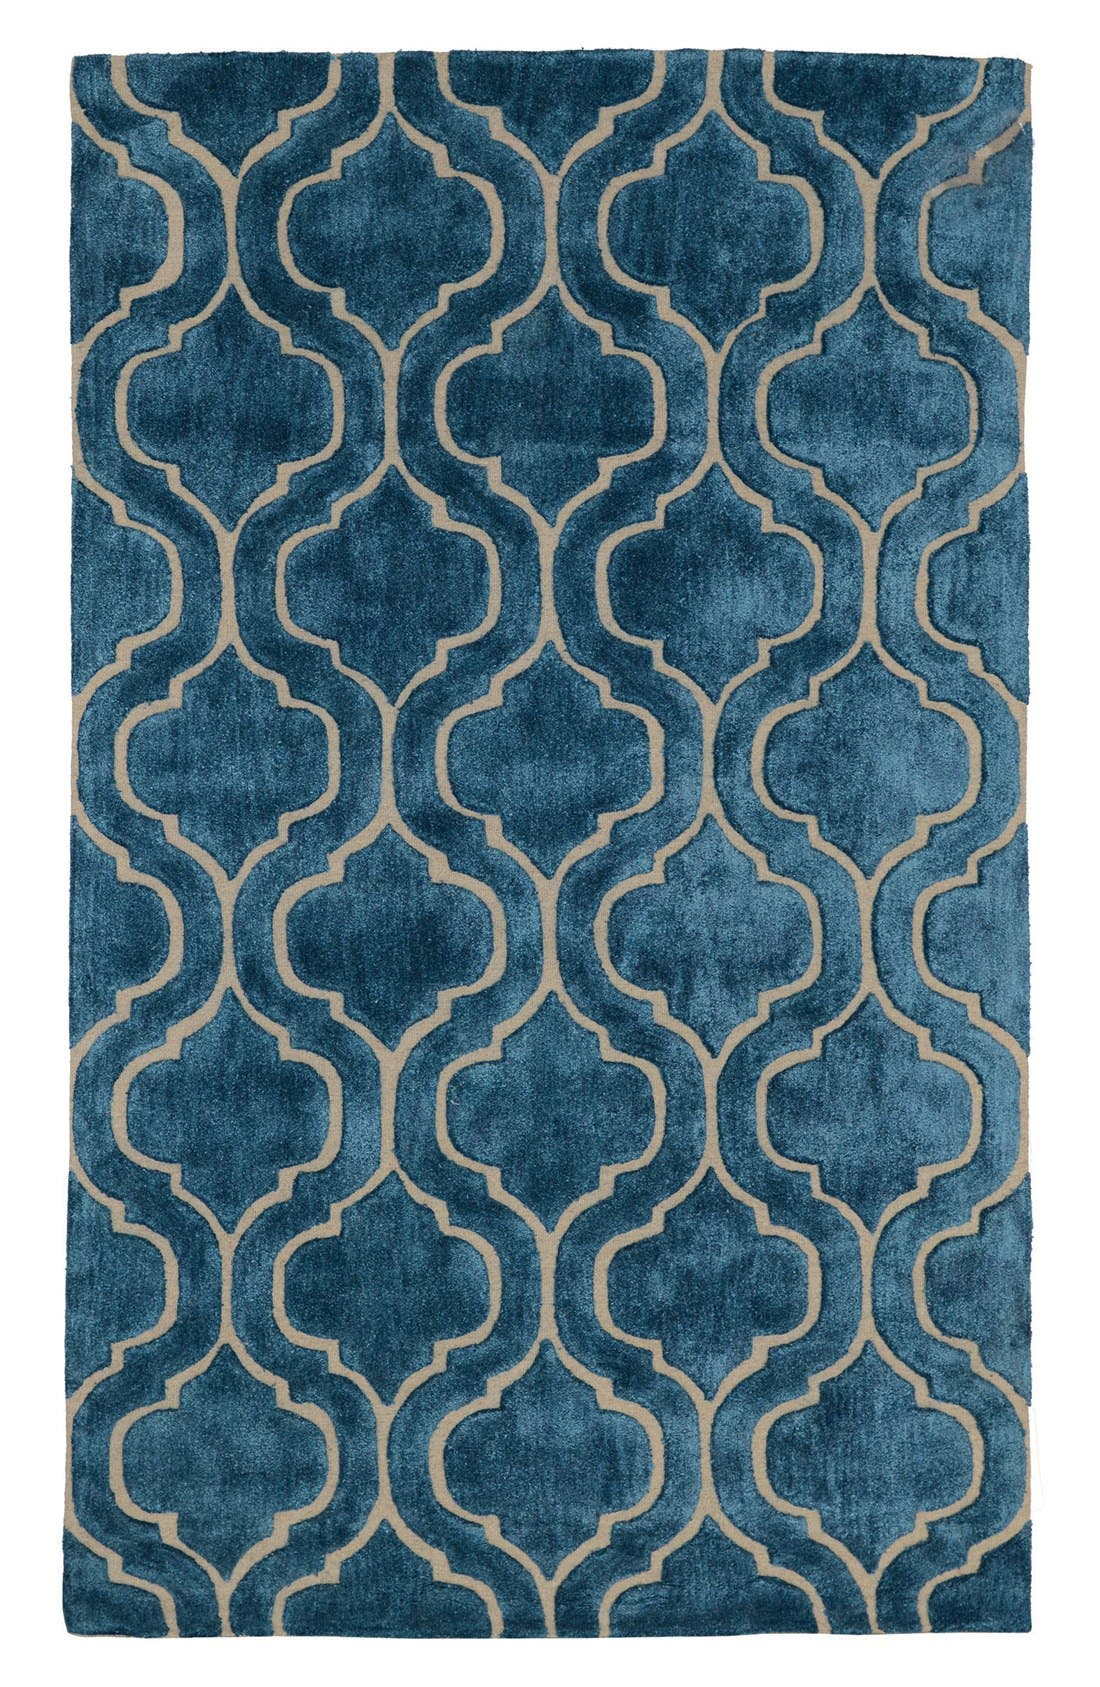 Villa Home 'Over Tufted - Blue Jay' Rug,                         Main,                         color, 400